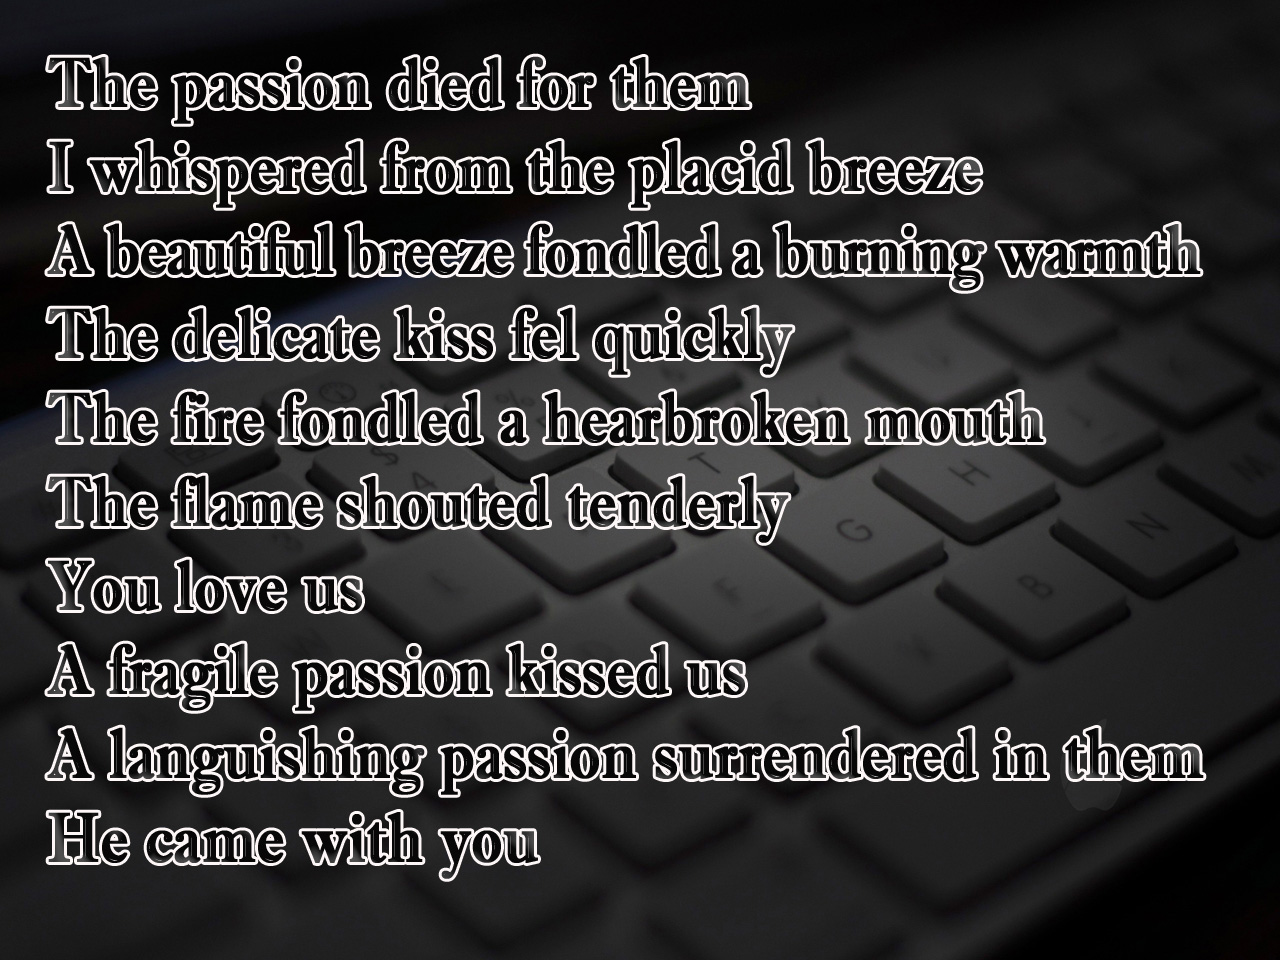 Computer Passion Poem For Her In Romantic Mood Poetry Likers